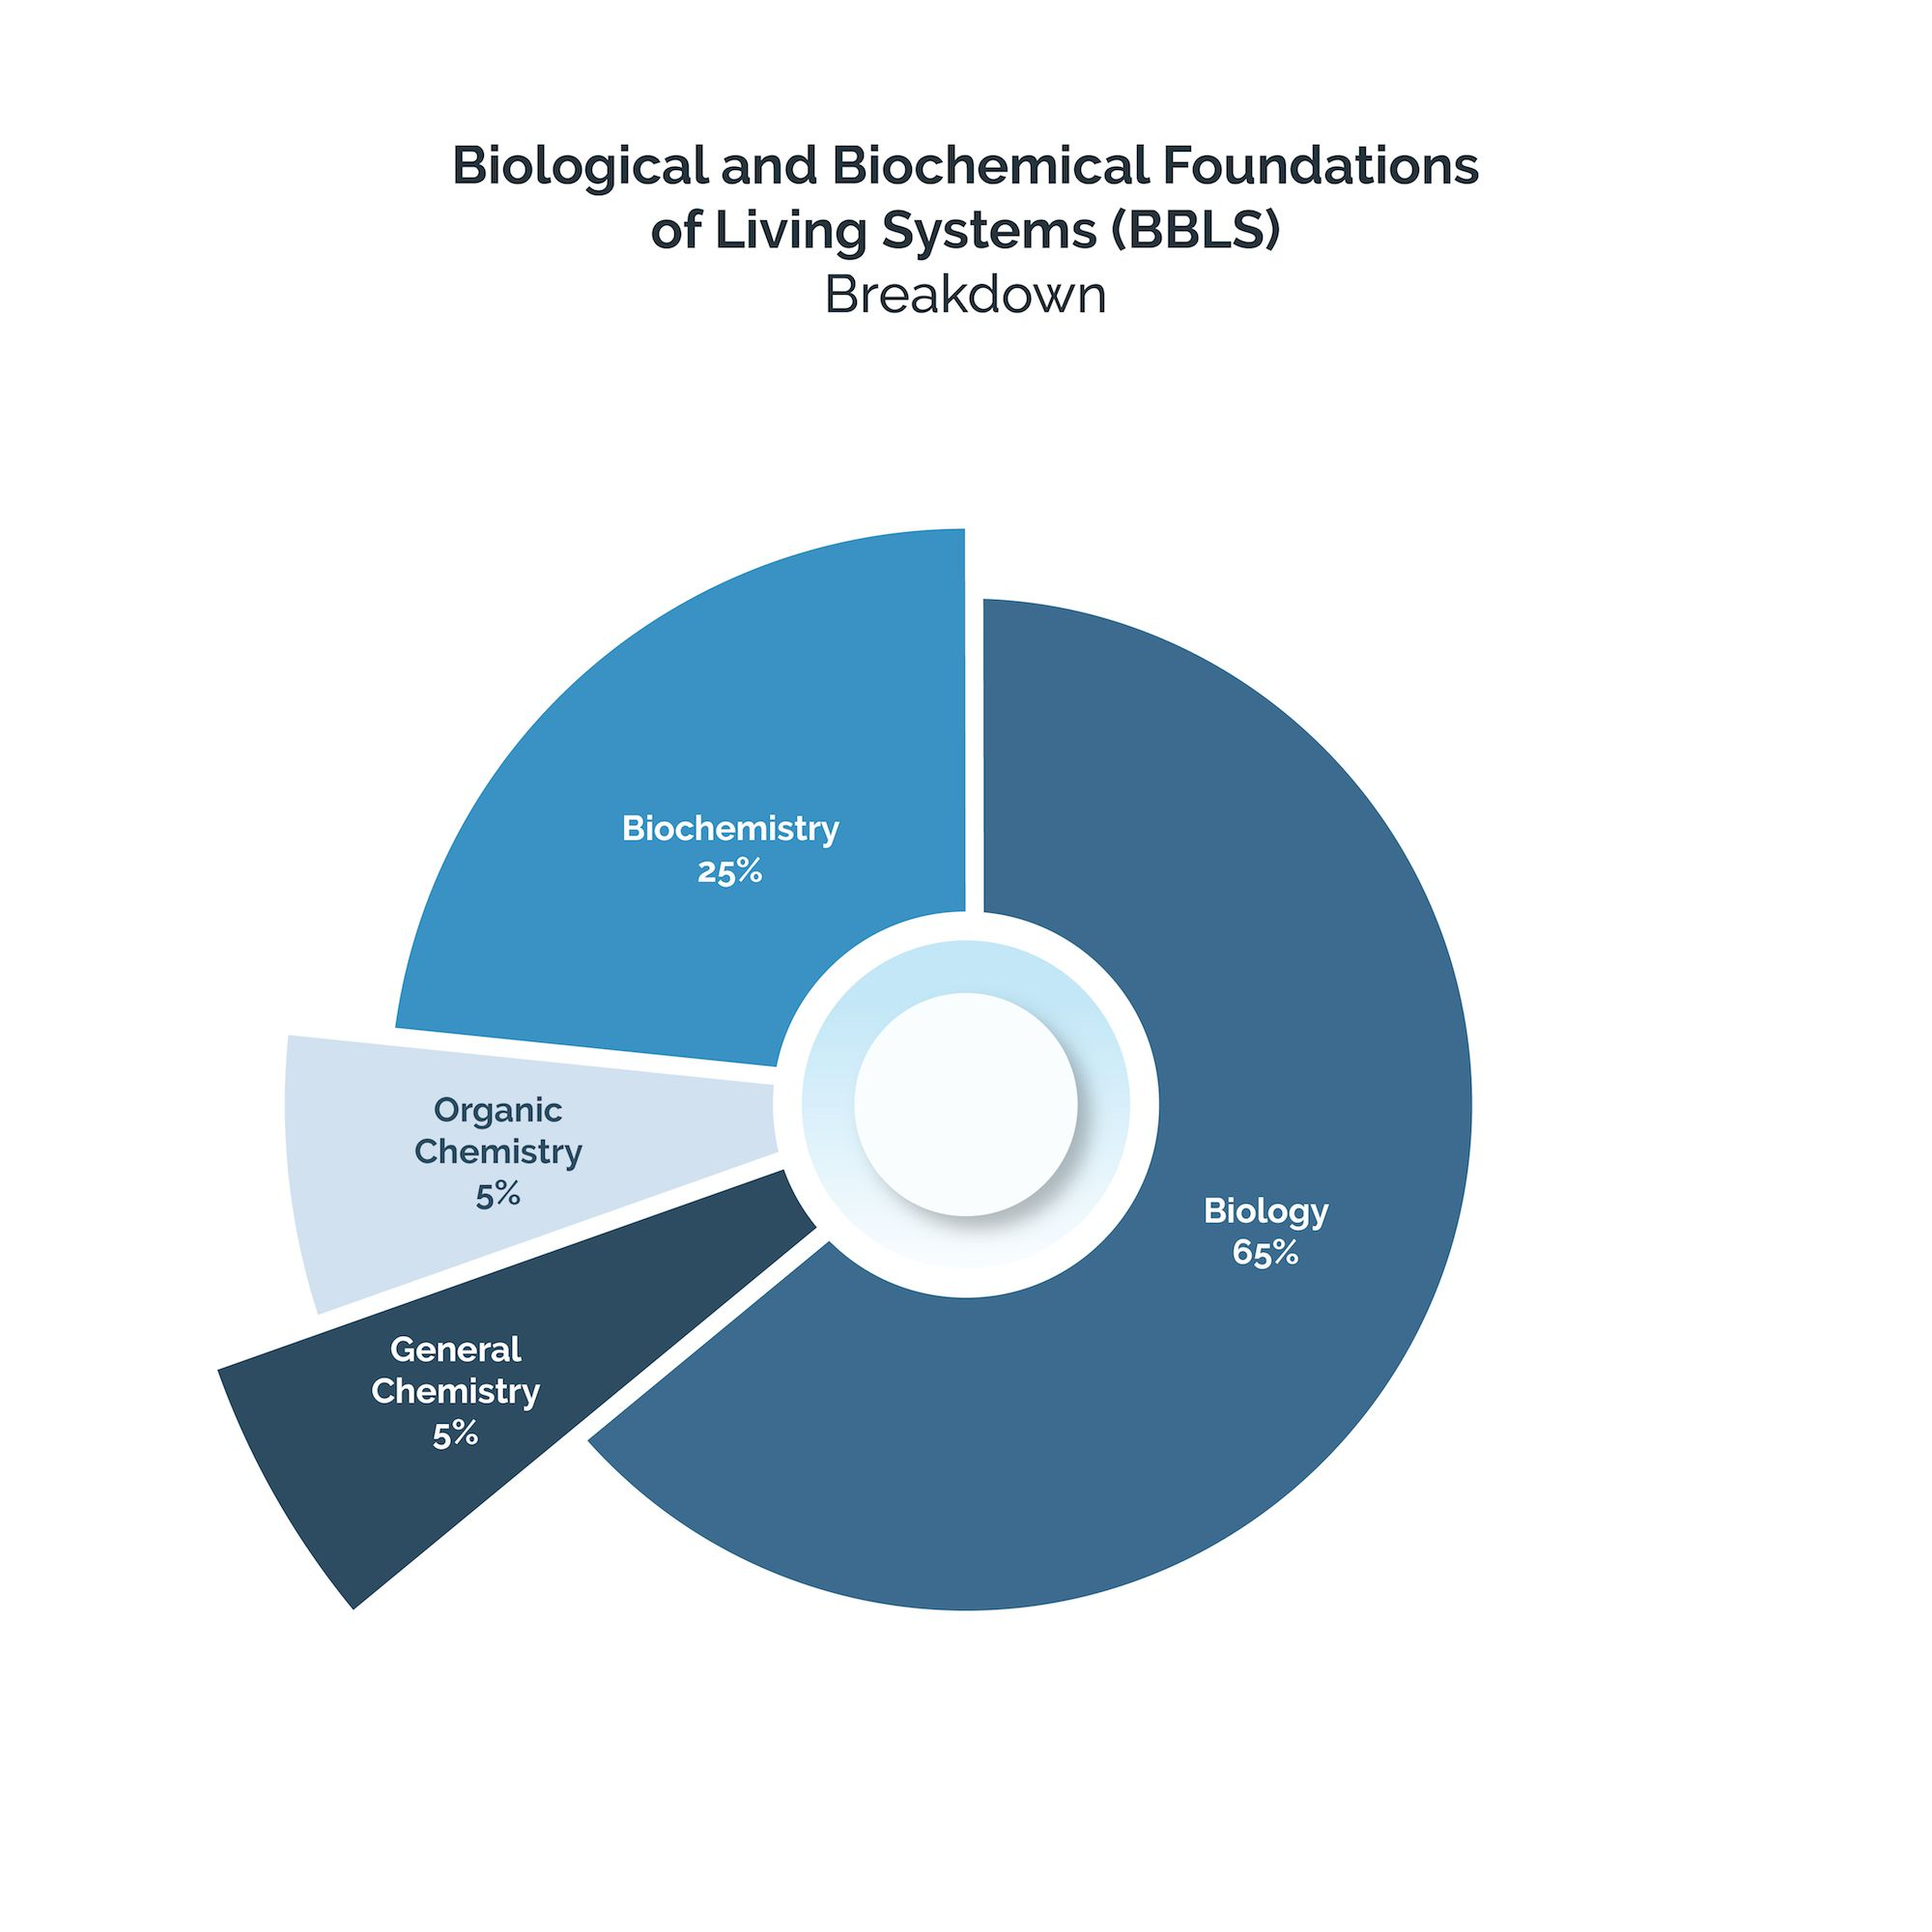 Biological and Biochemical Foundations of Living Systems